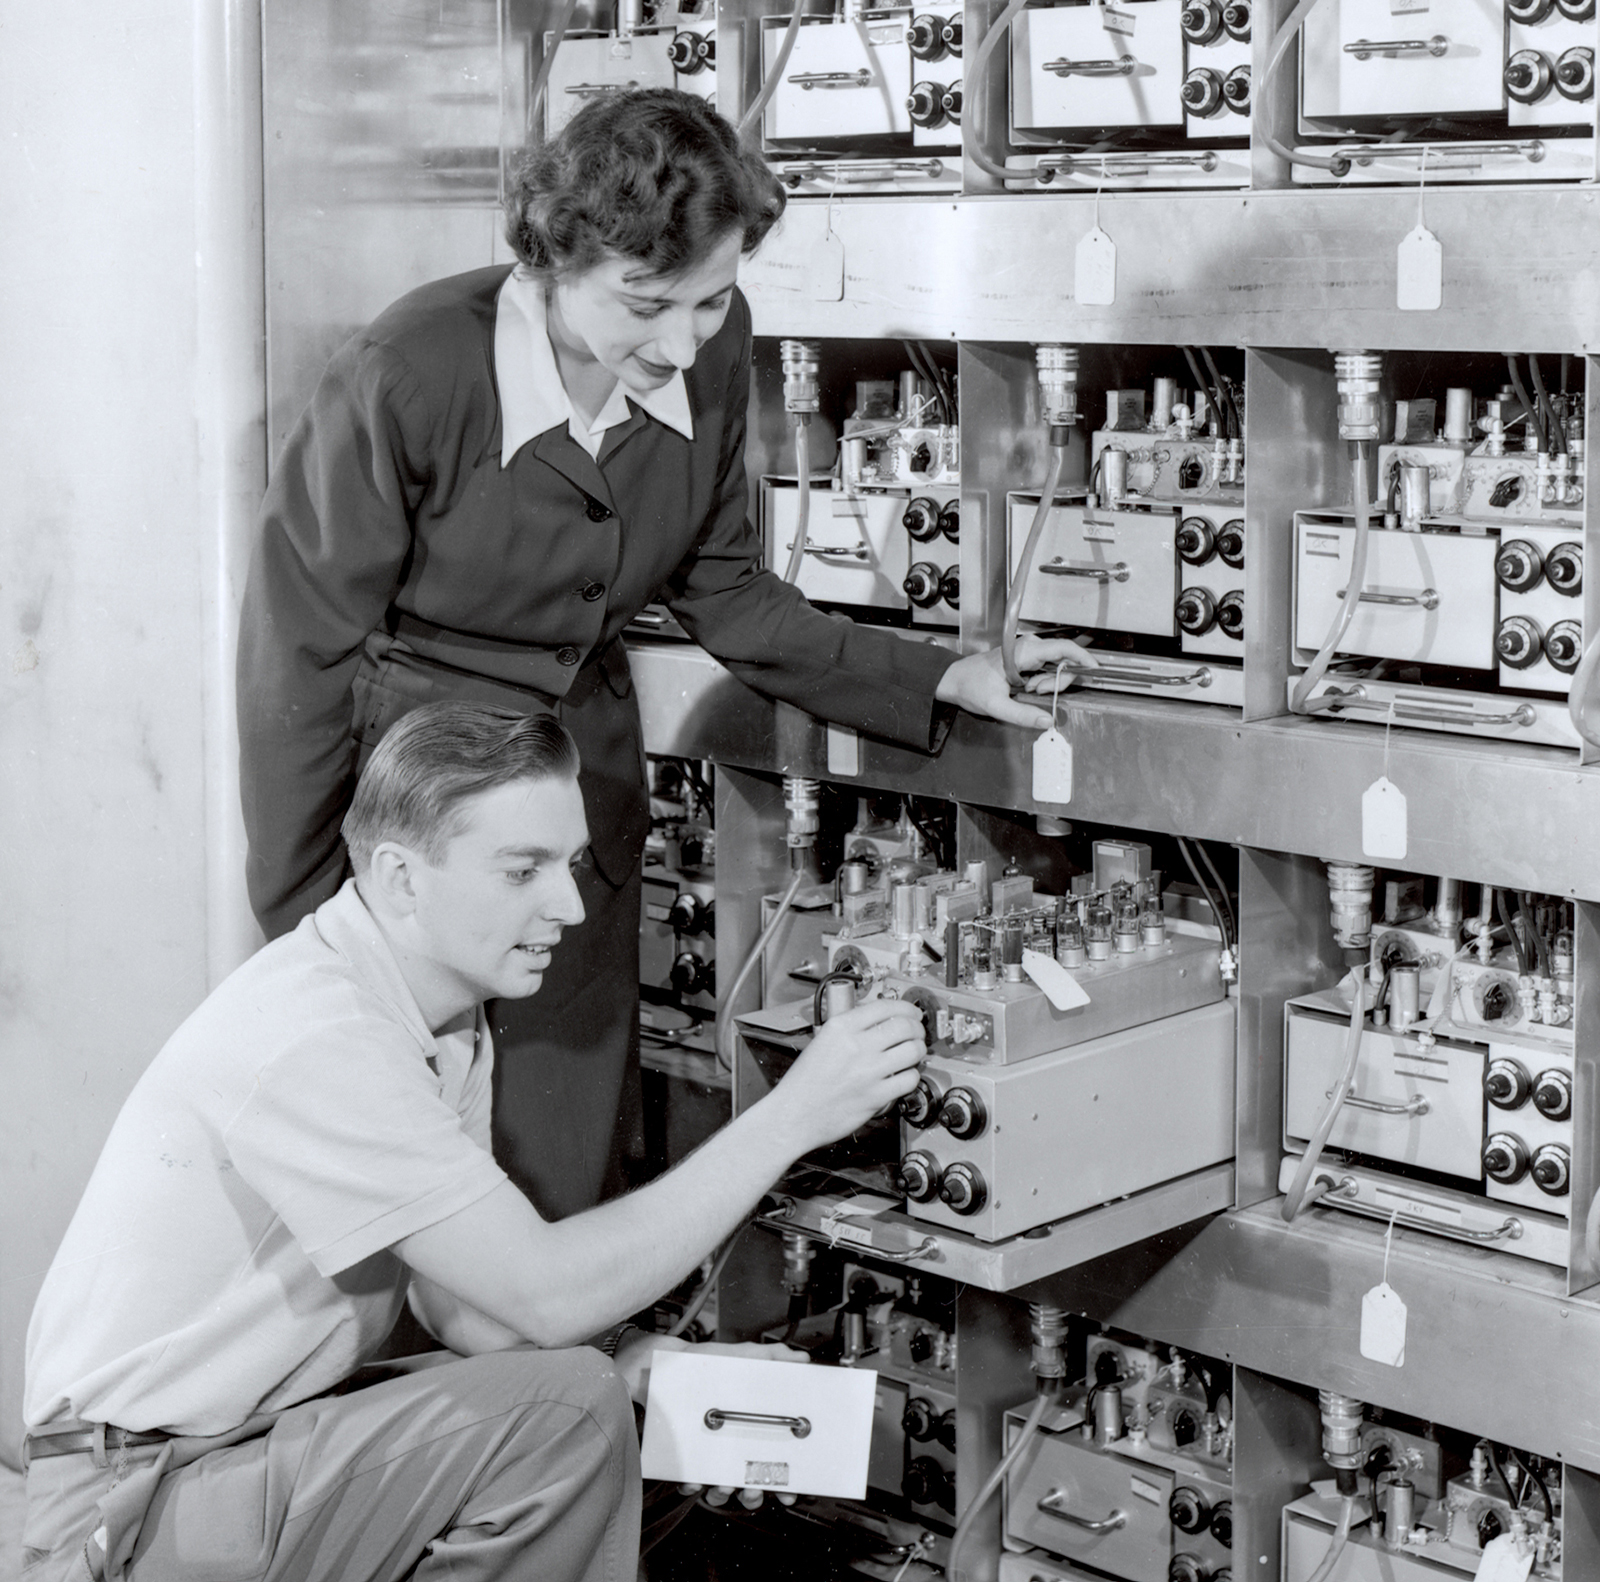 Margaret Butler helps assemble the ORACLE computer with Oak Ridge National Laboratory Engineer Rudolph Klein. In 1953, ORACLE was the world's fastest computer, multiplying 12-digit numbers in .0005 seconds. Designed at Argonne, it was constructed at Oak Ridge.